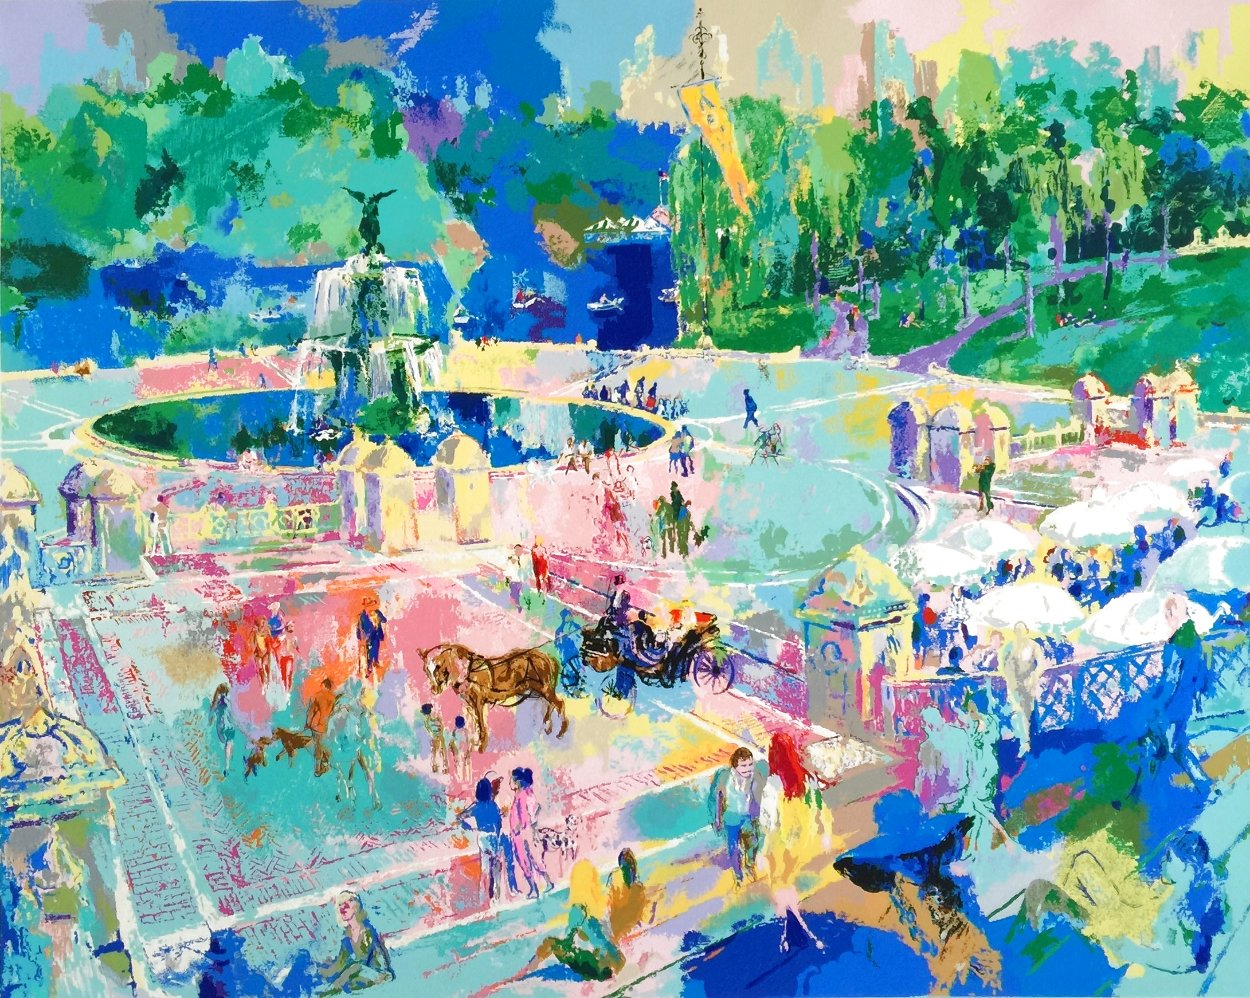 Bethesda Fountain - Central Park 1989 30x38 Super Huge  Limited Edition Print by LeRoy Neiman